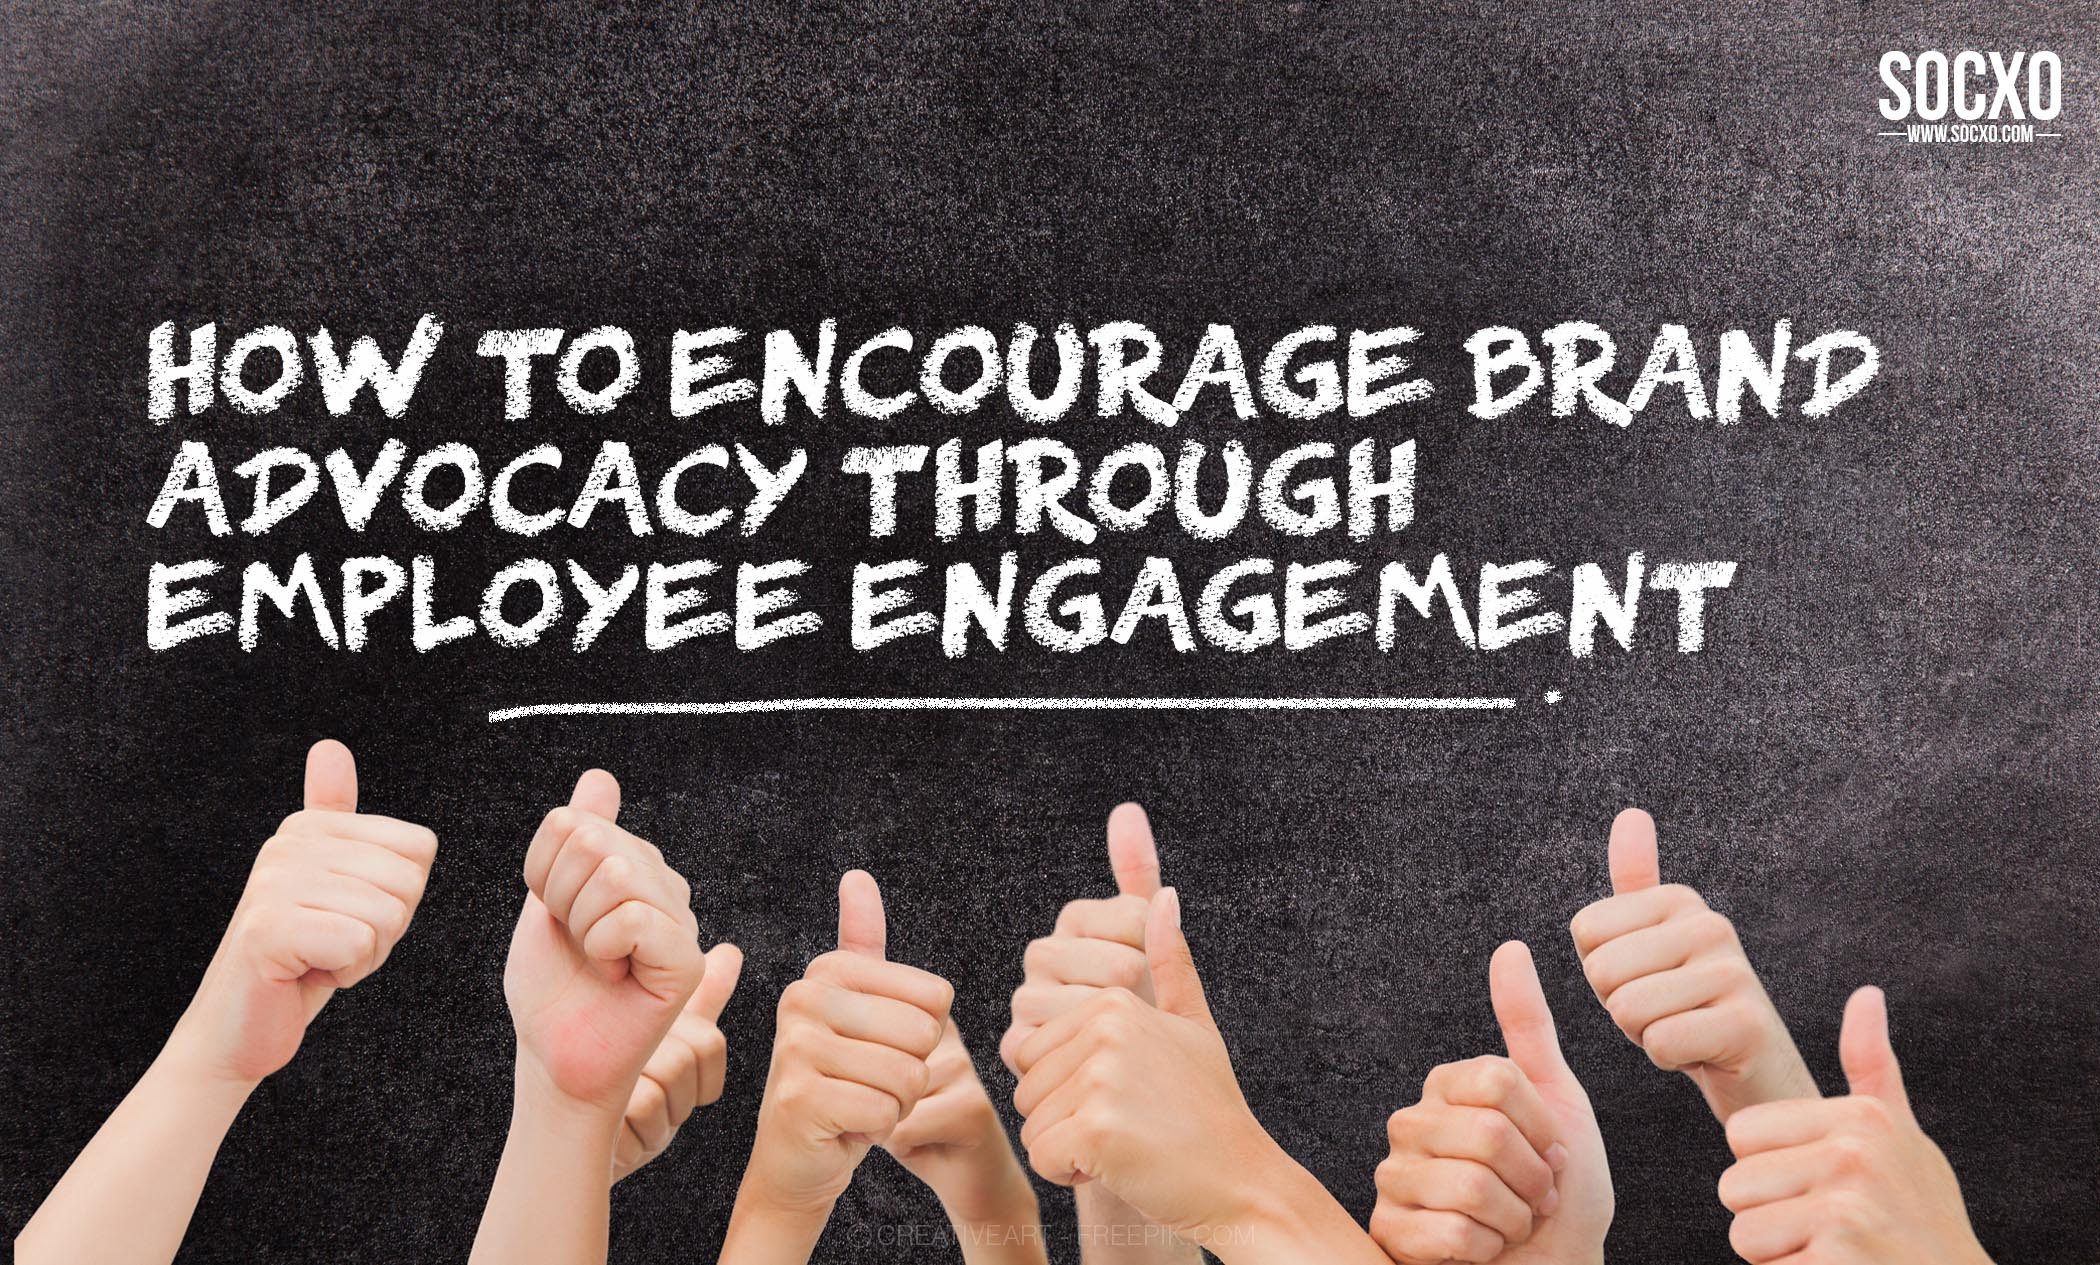 How to Encourage Brand Advocacy through Employee Engagement